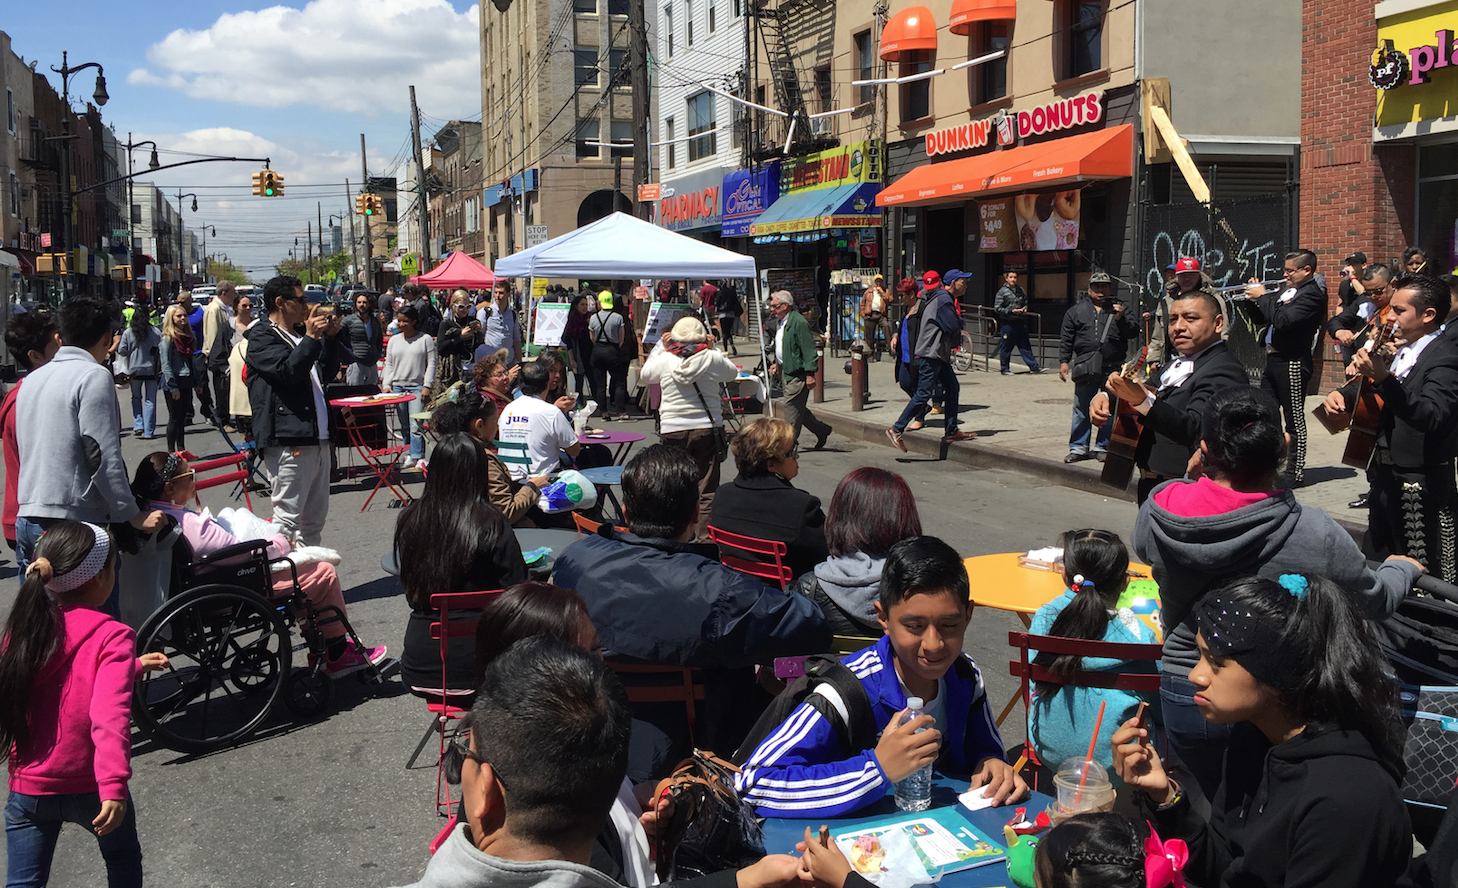 The city held a successful one-day plaza at the location in April. Photo: David Meyer